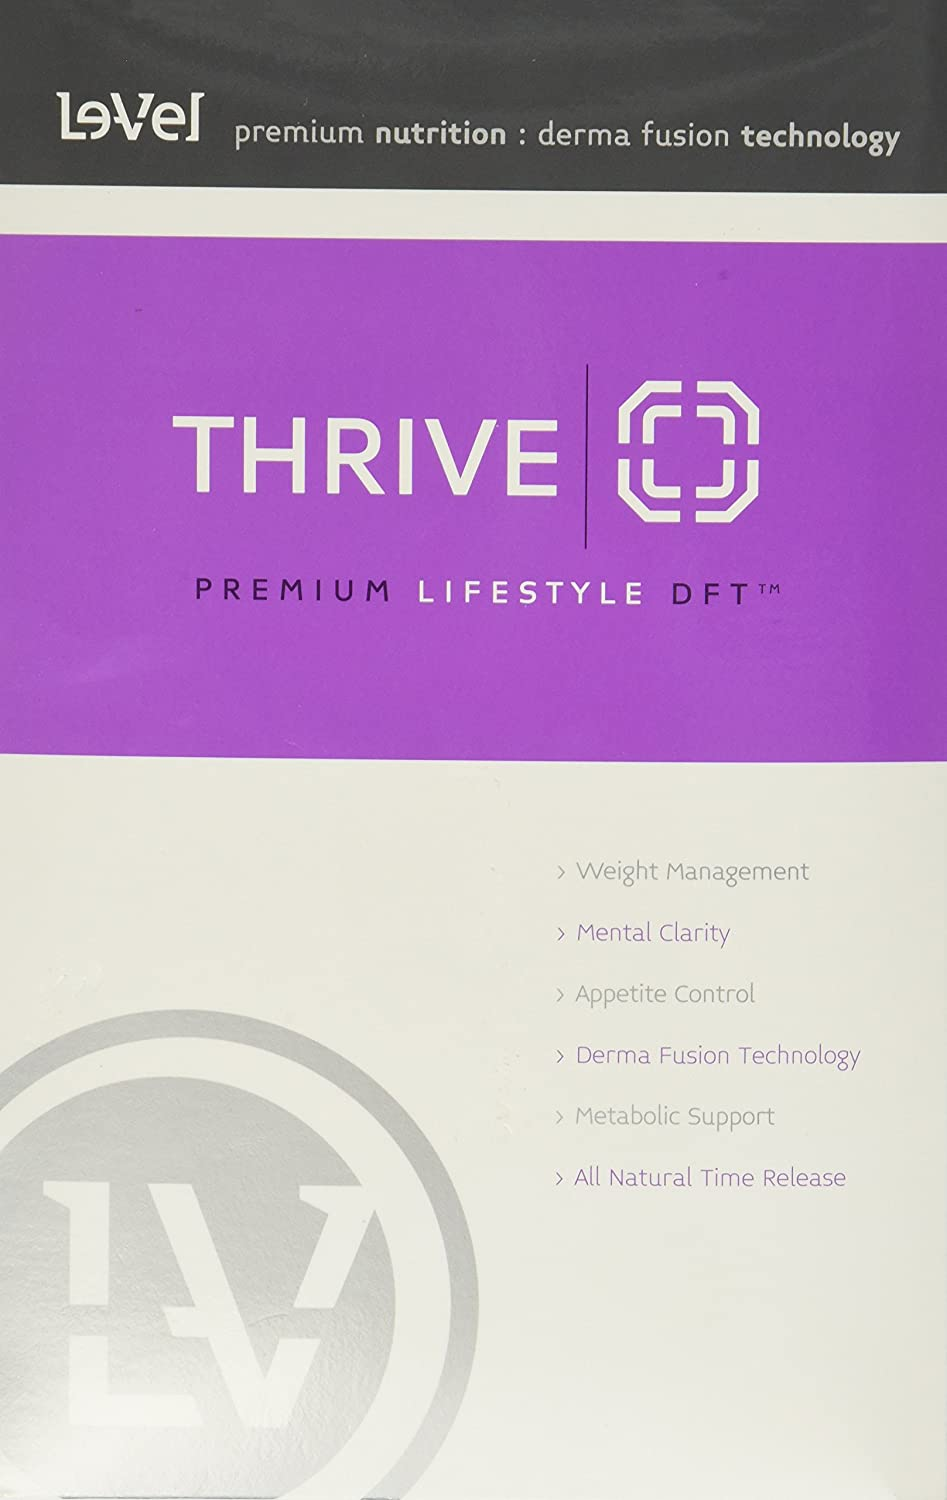 Level Thrive Derma Fusion Technology Dft 1 Month Supply 30